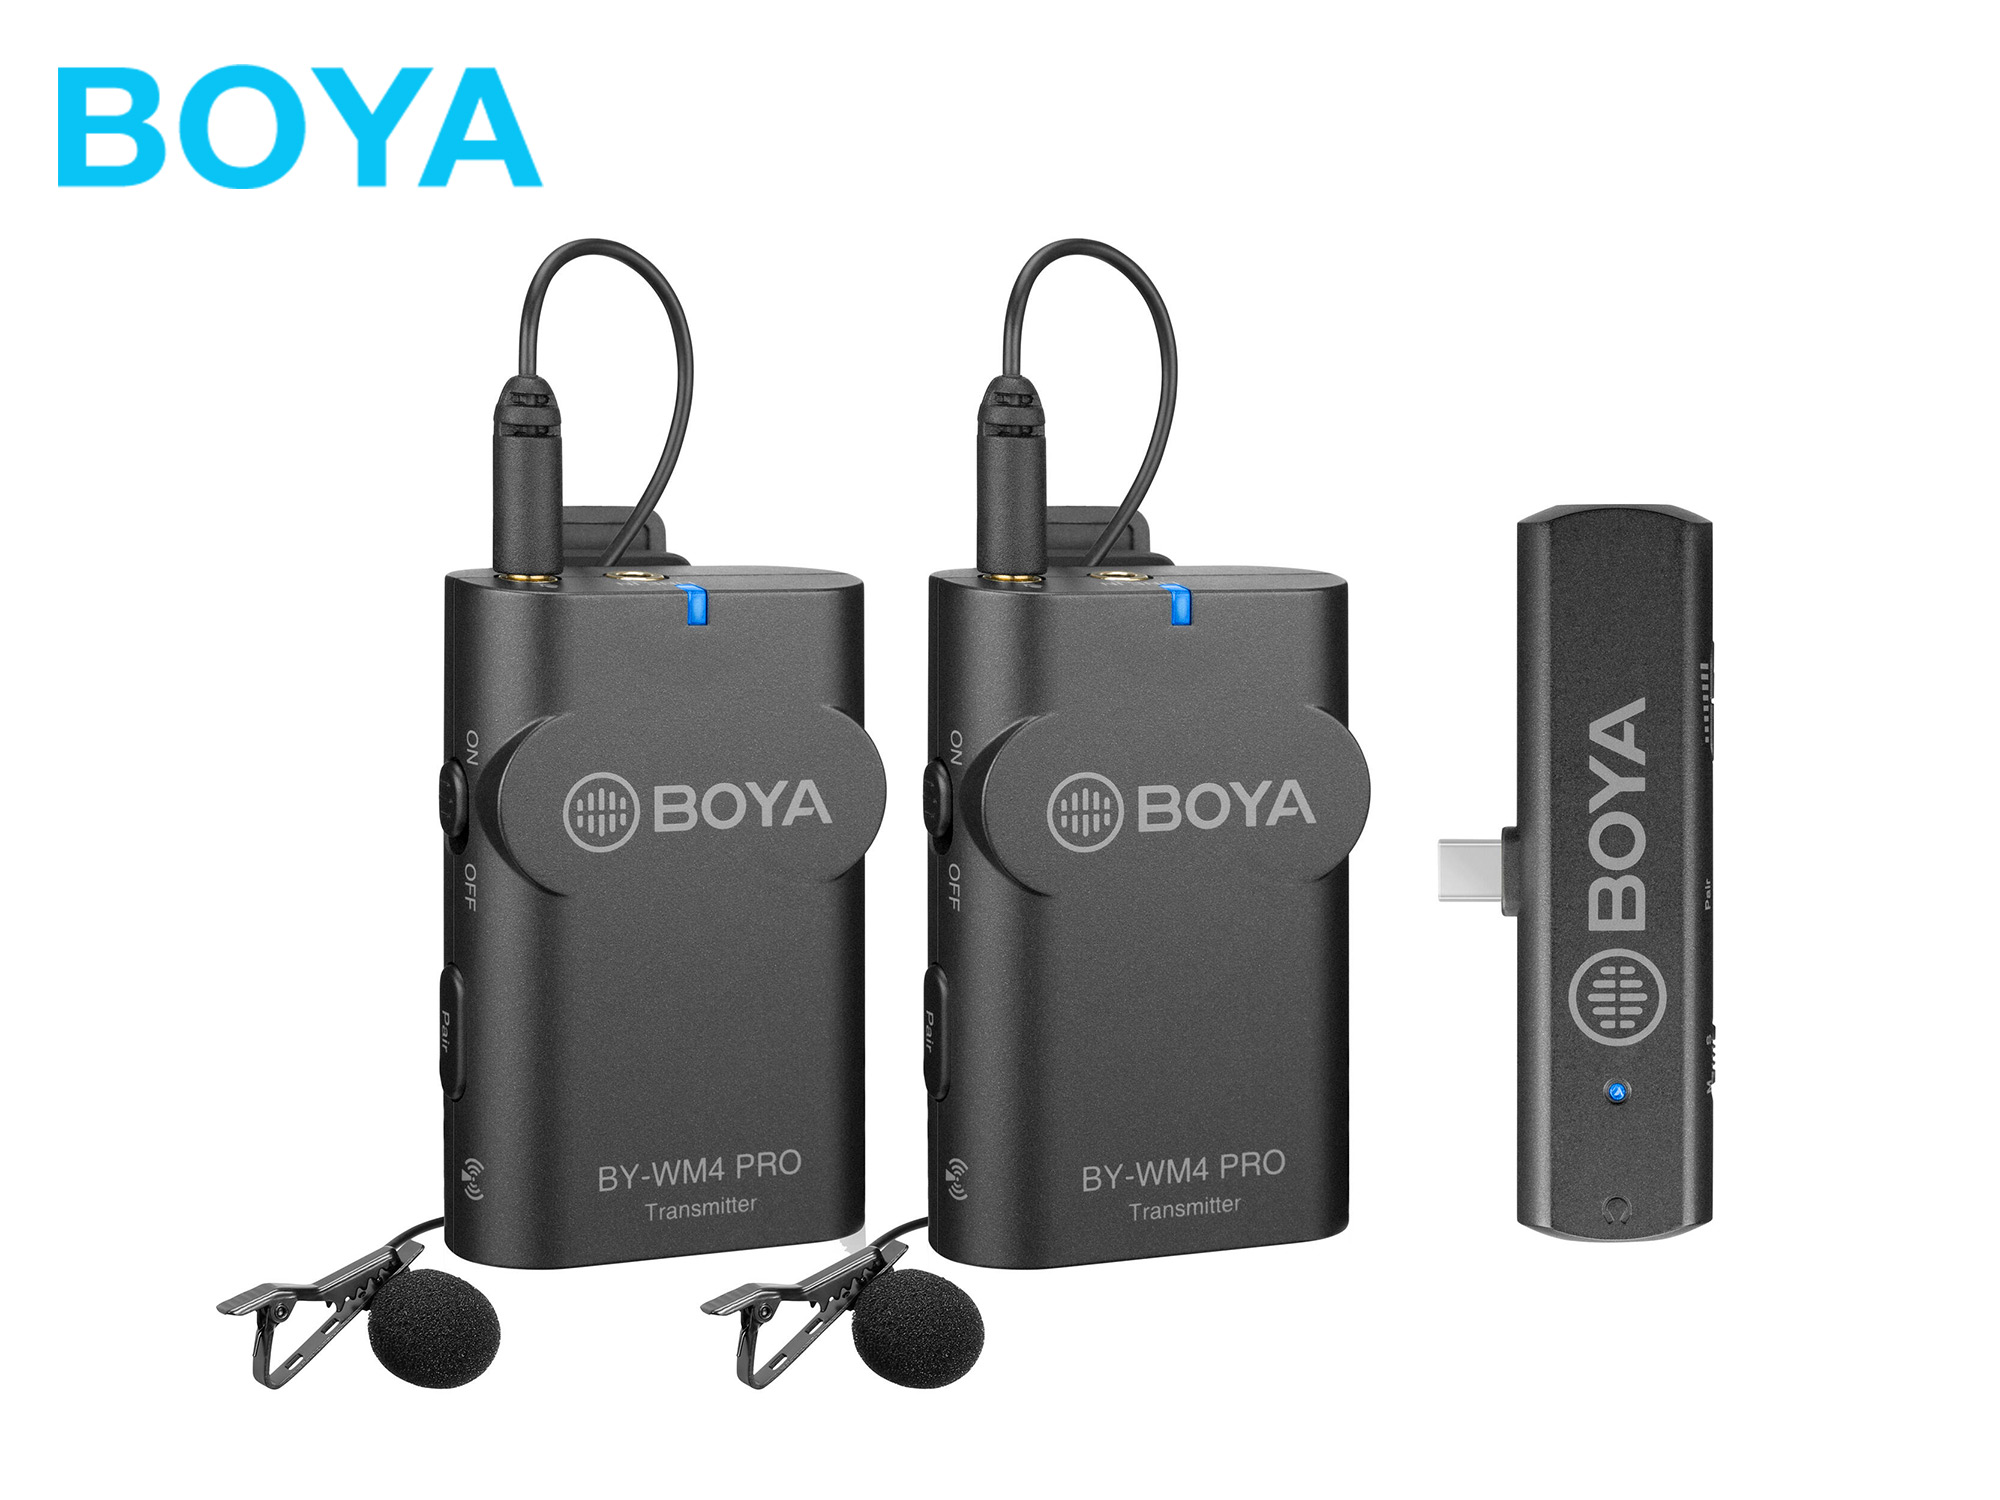 Boya BY-WM4 PRO K6 2.4 GHz Wireless Microphone System For Android and other Type-C devices (2 Transmitters)